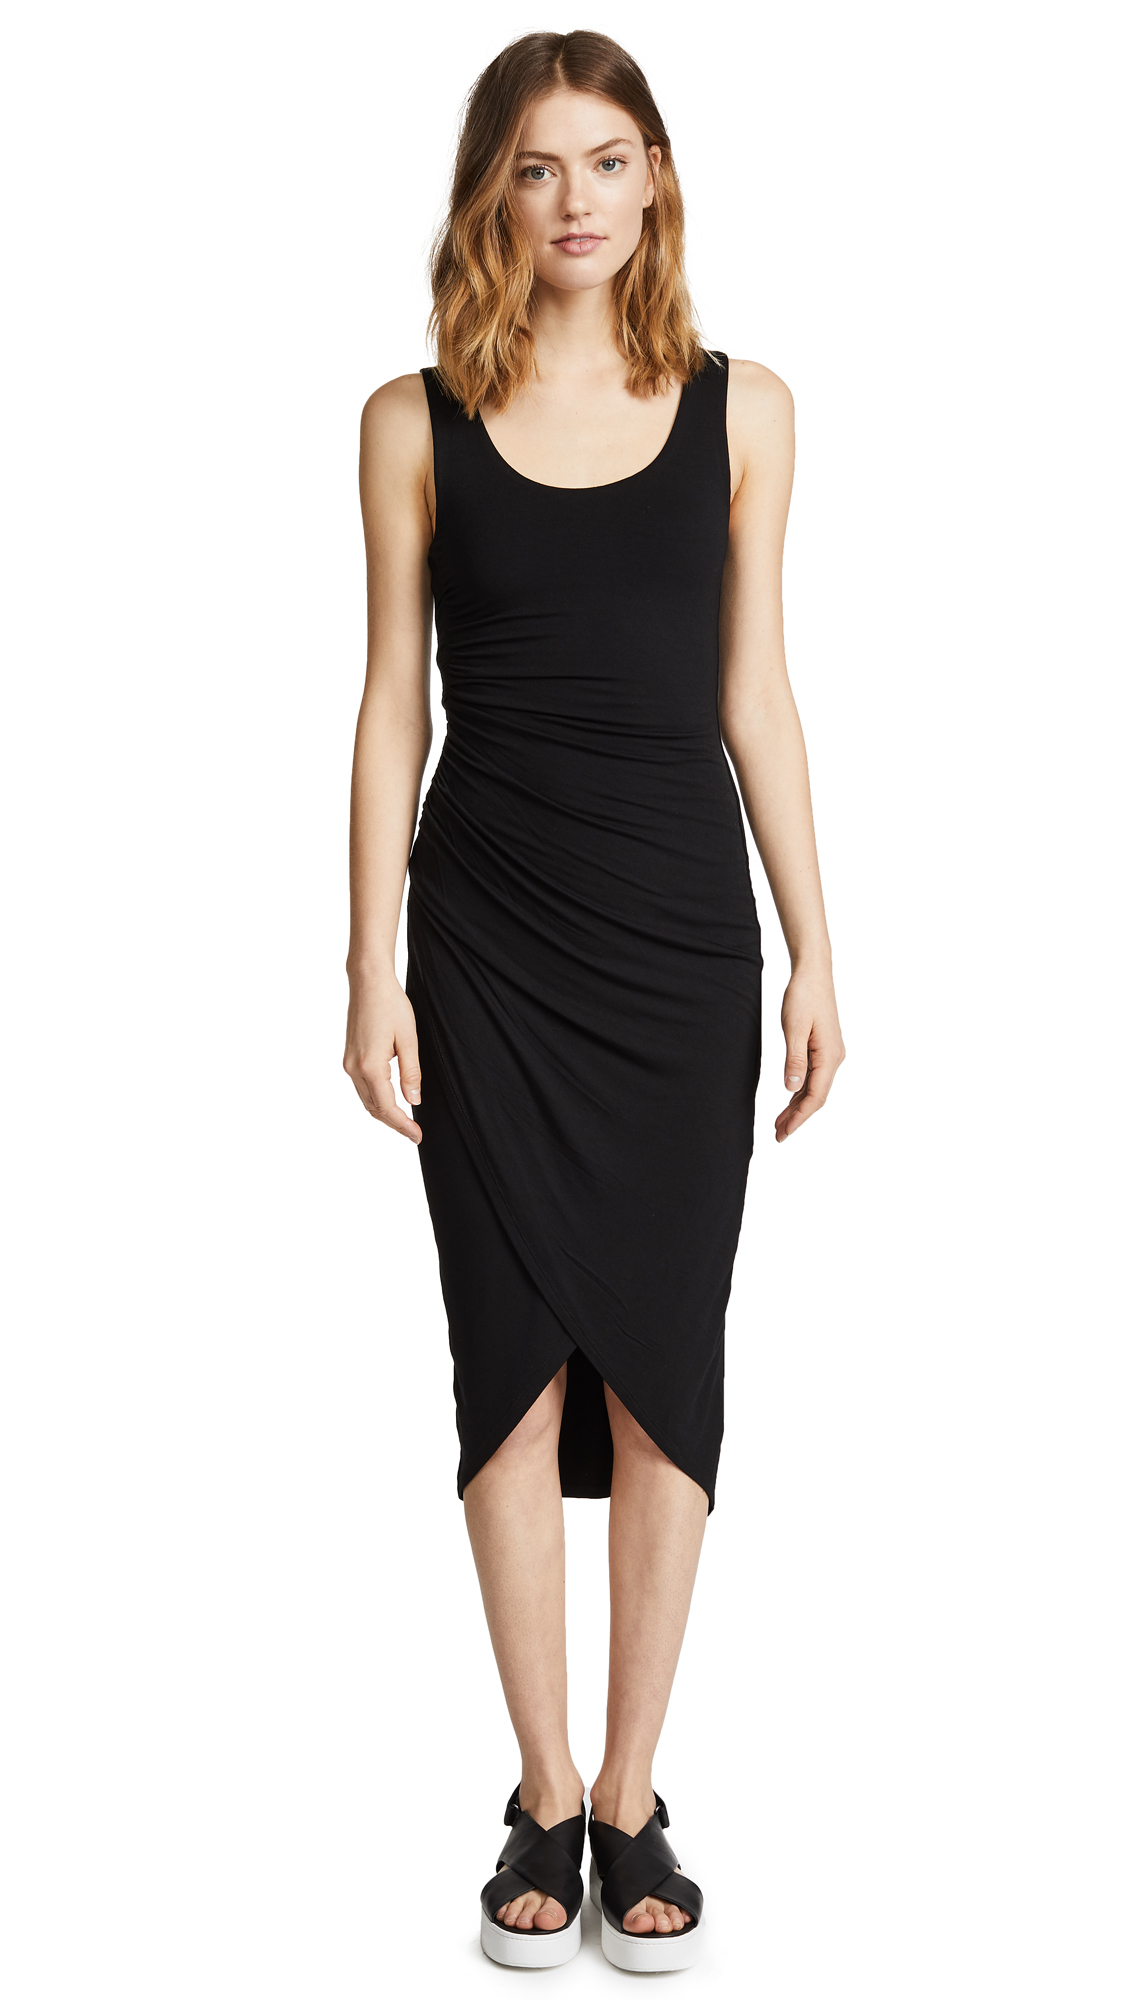 Bailey44 Solid Dishdasha Dress In Black